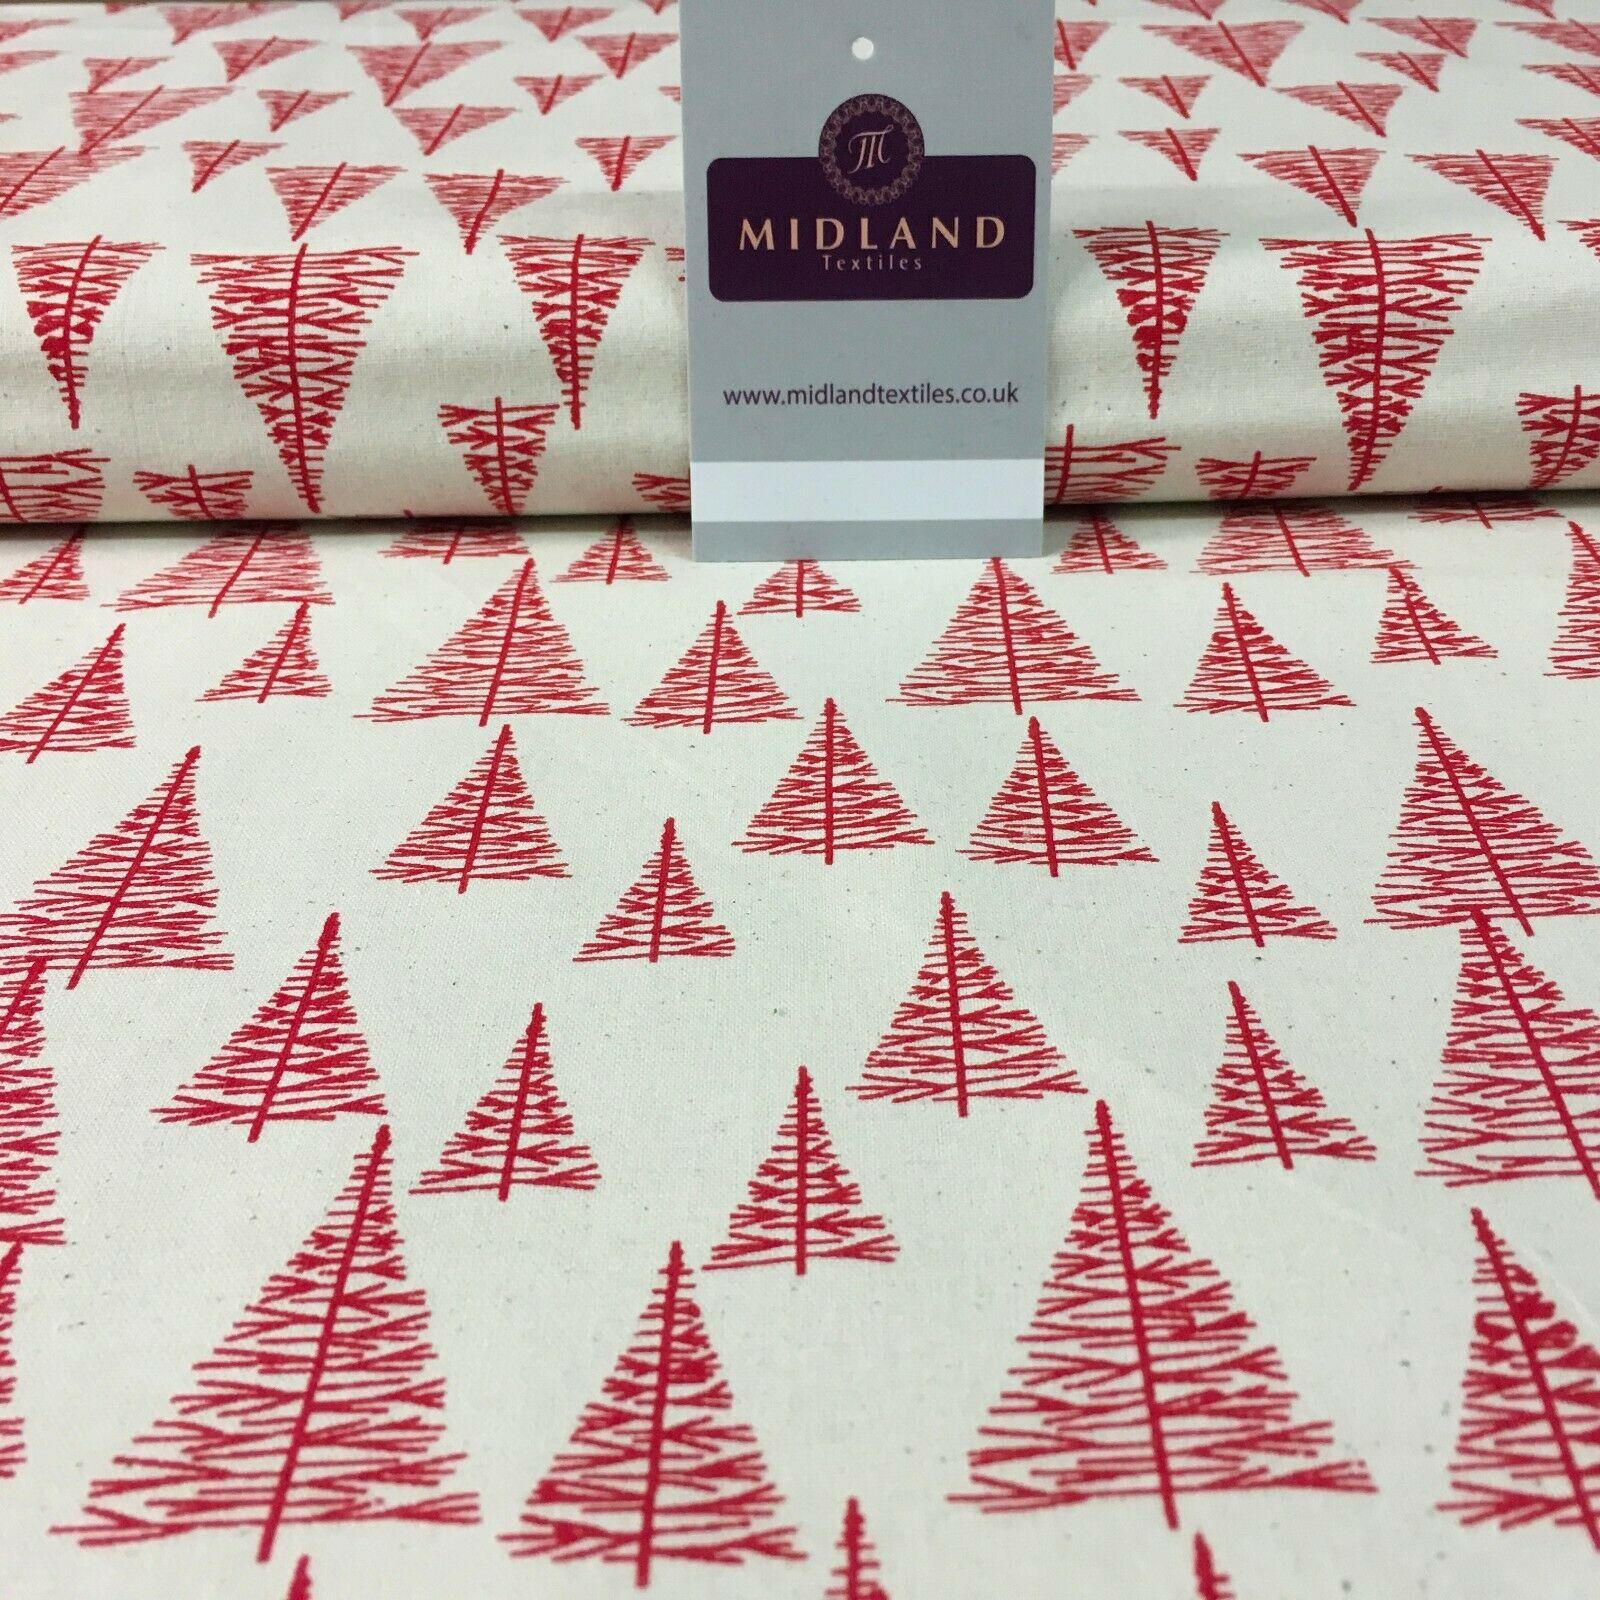 Nordic trees Christmas Cotton Printed xmas fabric 110 cm Wide MD1156 Mtex